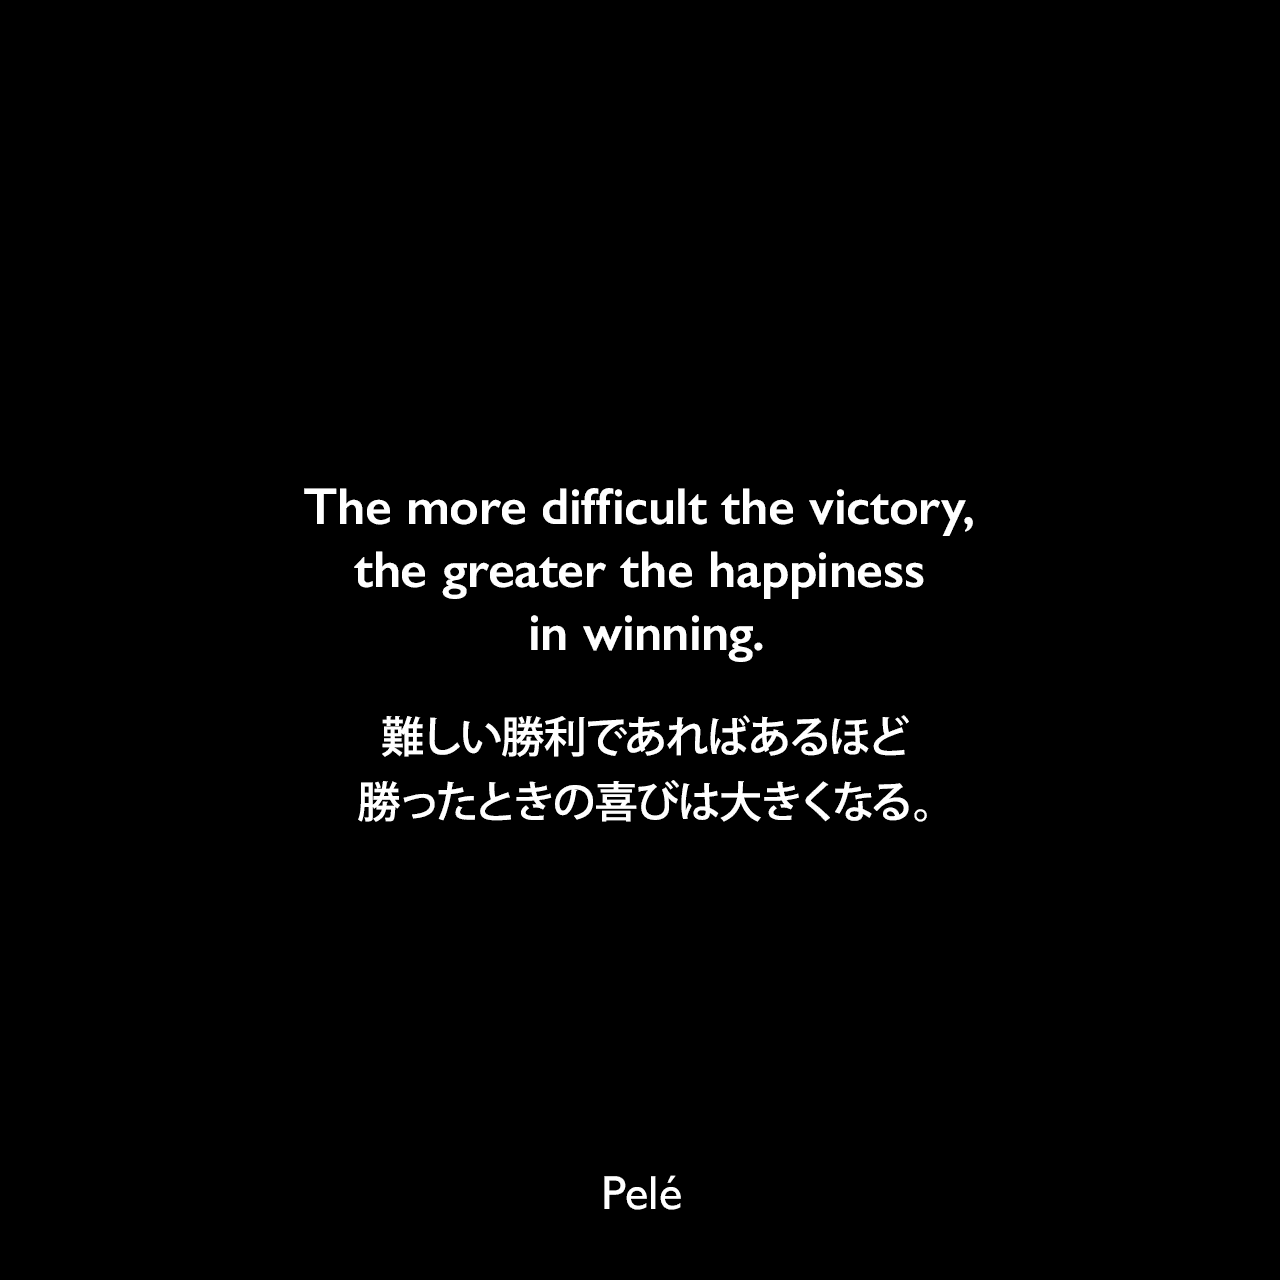 The more difficult the victory, the greater the happiness in winning.難しい勝利であればあるほど、勝ったときの喜びは大きくなる。- ペレによる本「Pele: The Autobiography」よりPelé